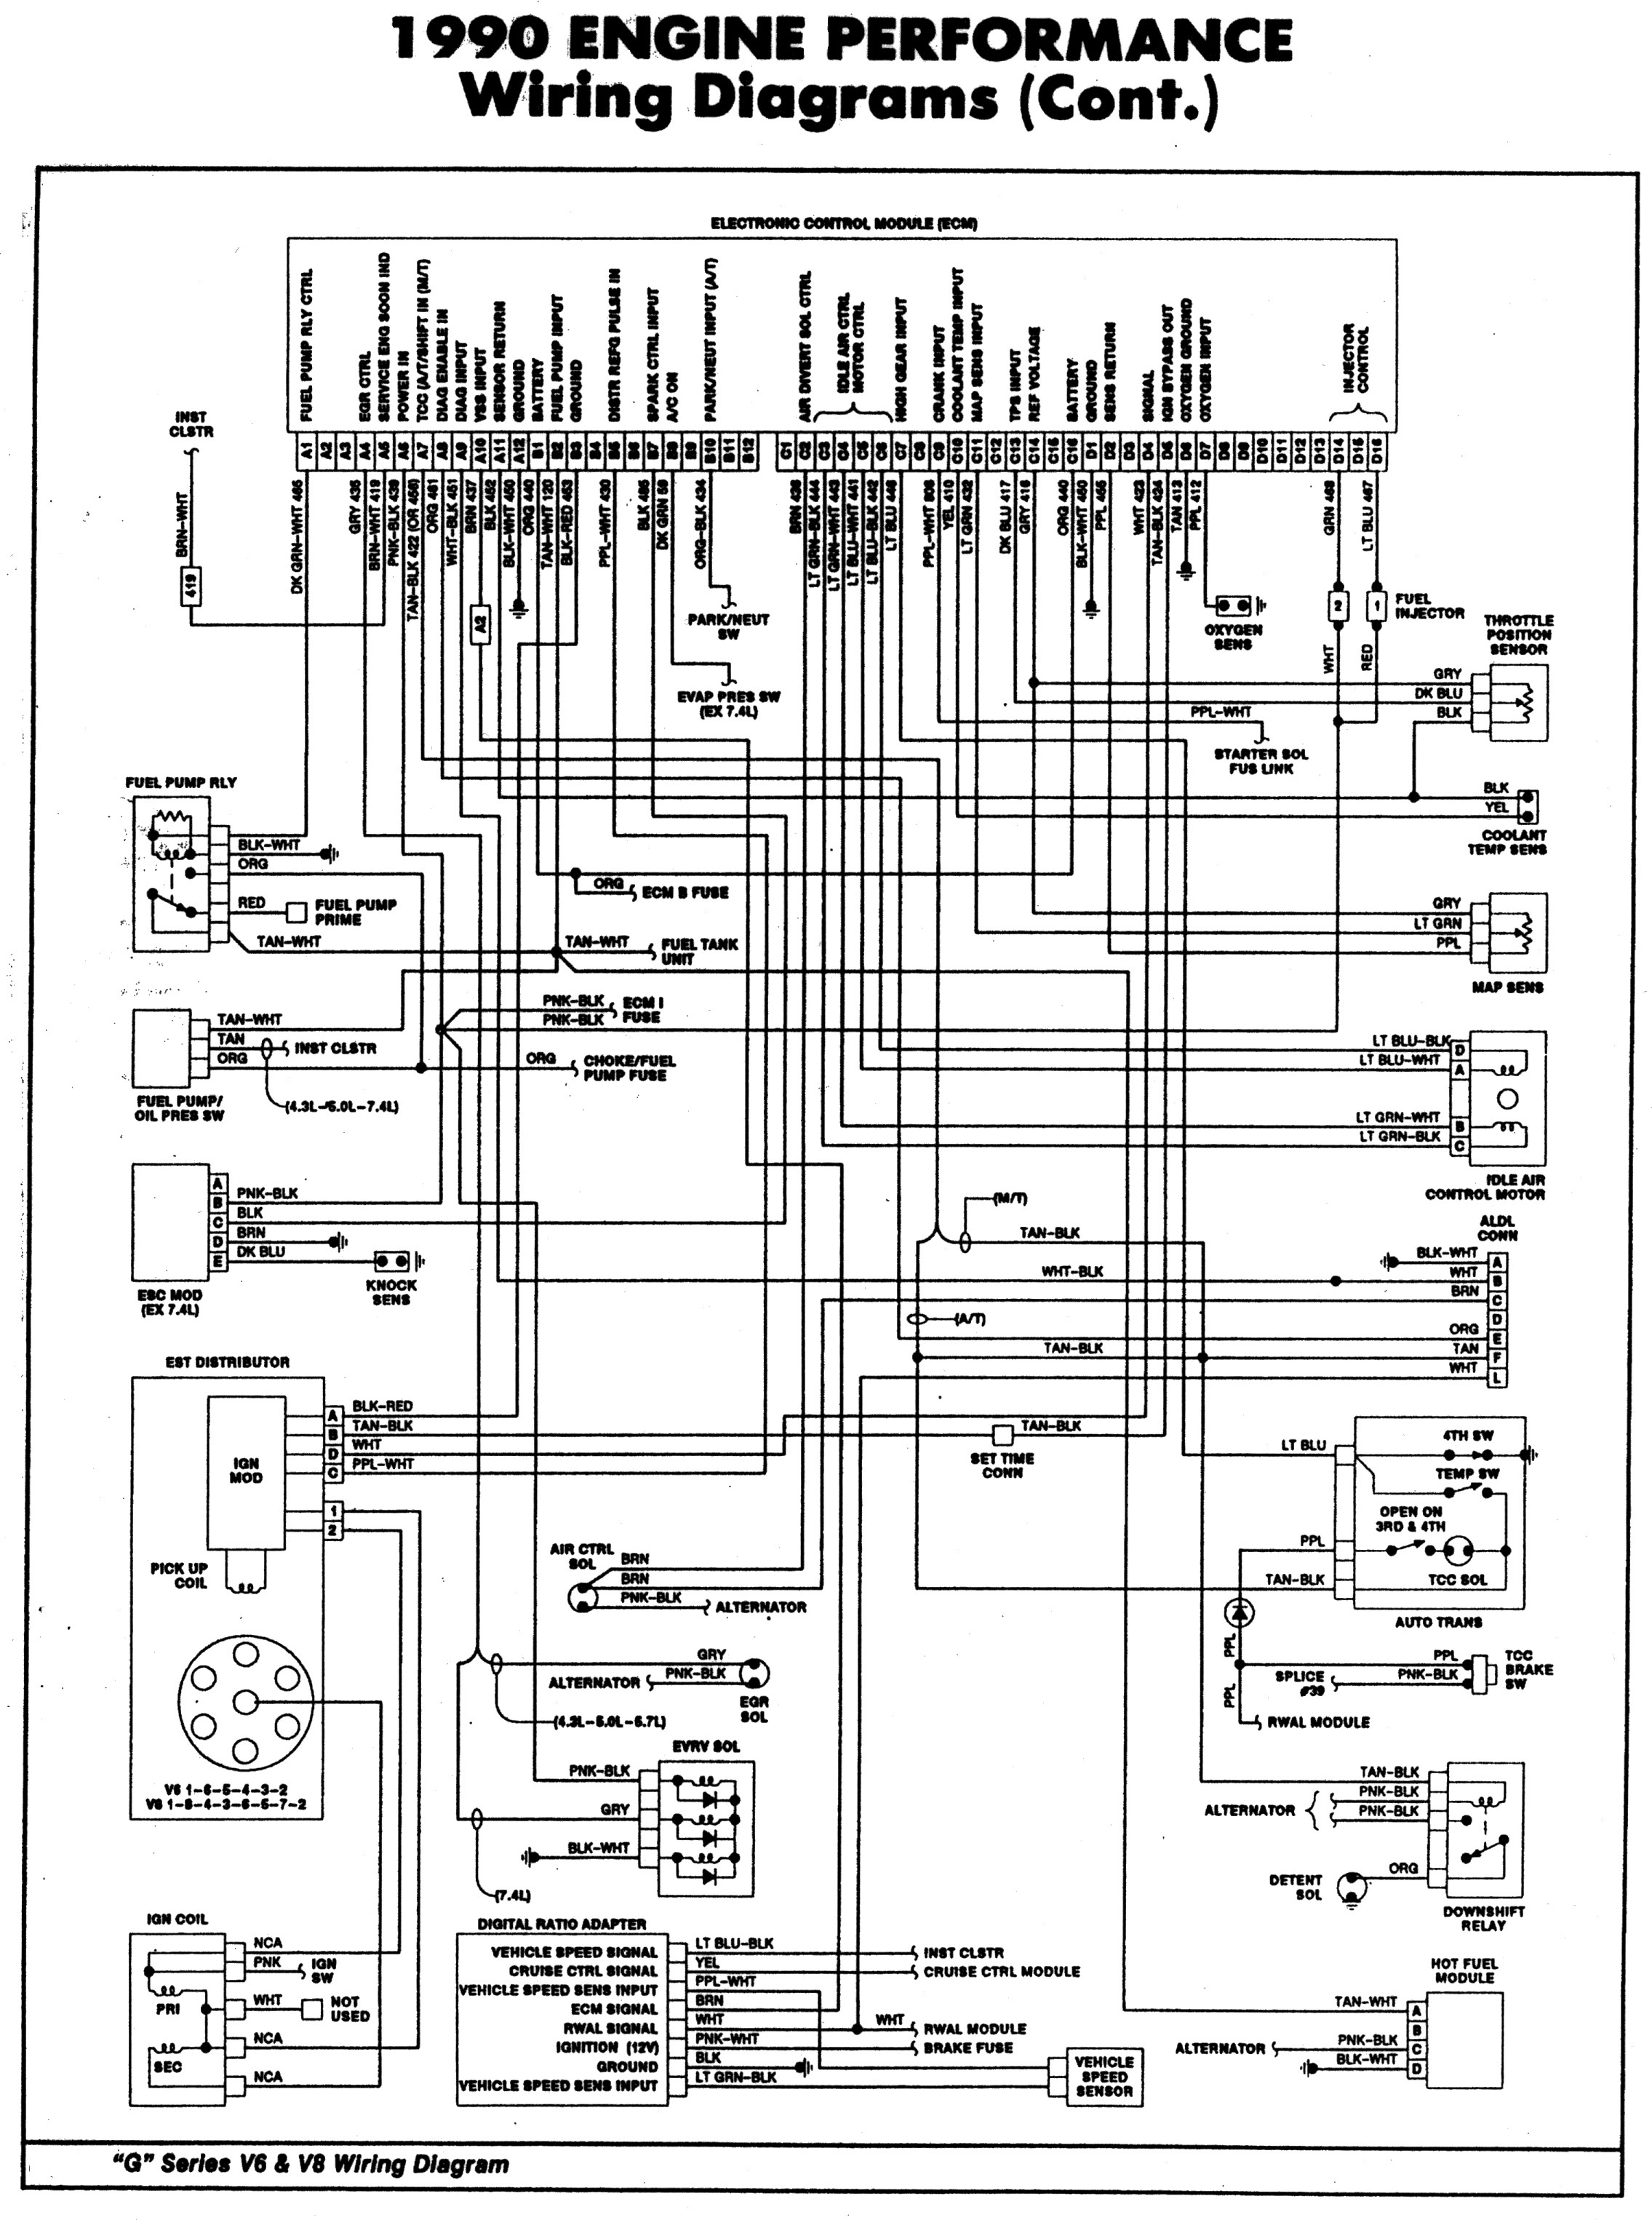 hight resolution of 1994 chevy truck engine diagram wiring diagram query 1994 chevy truck wiring diagram image details wiring